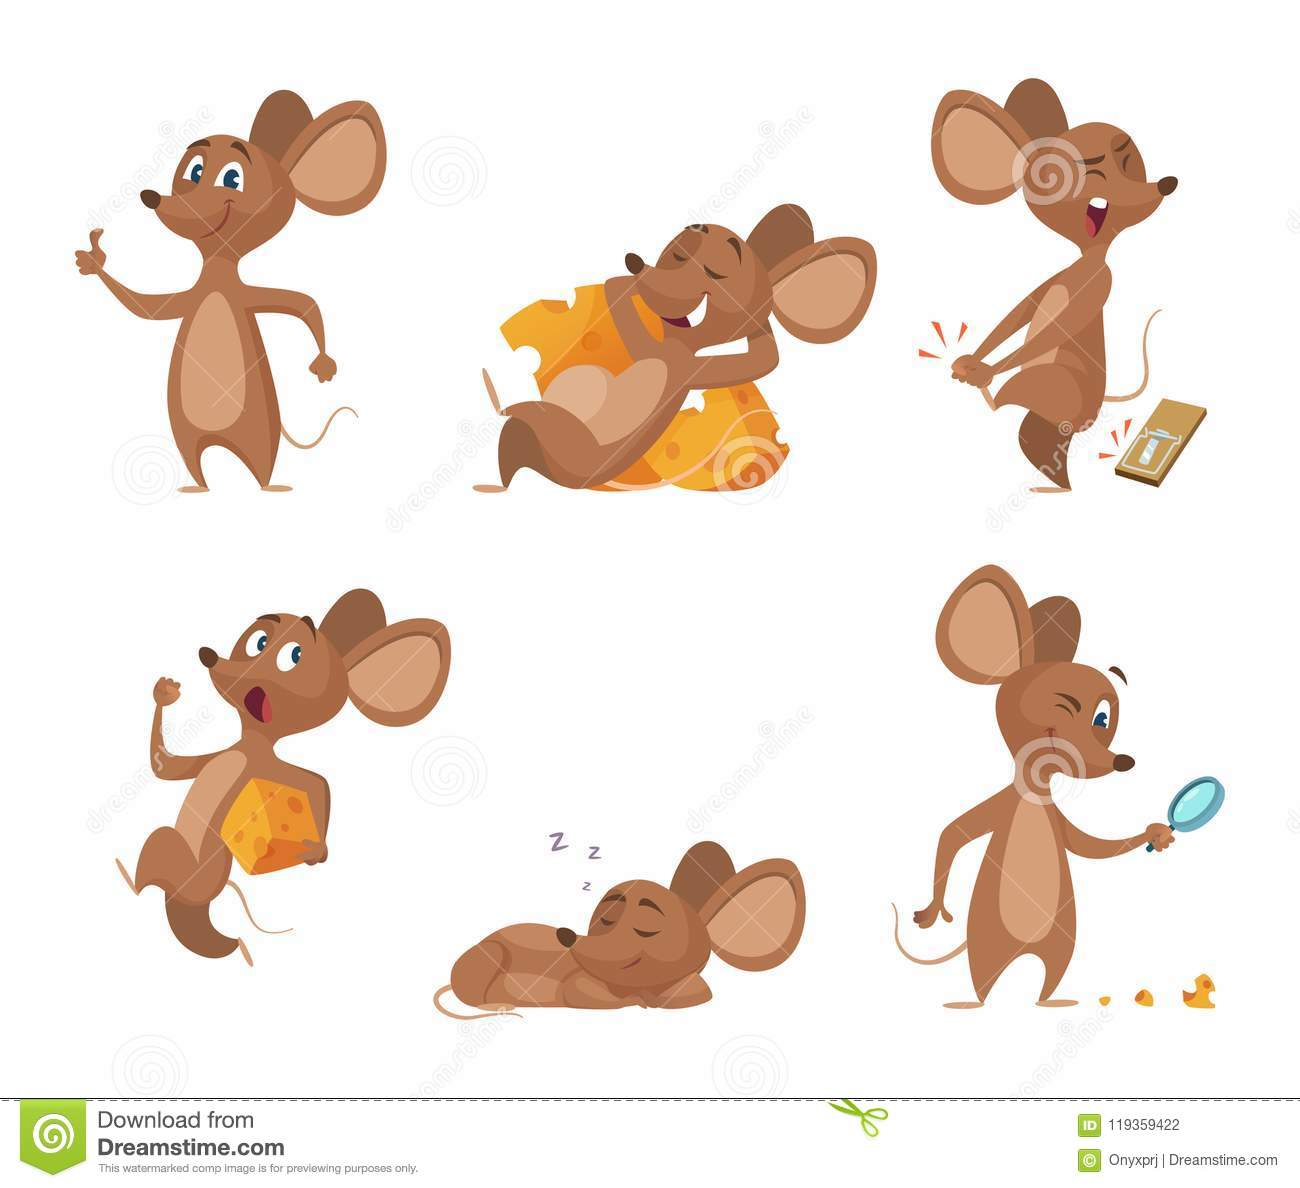 various characters of mice in action poses stock vector